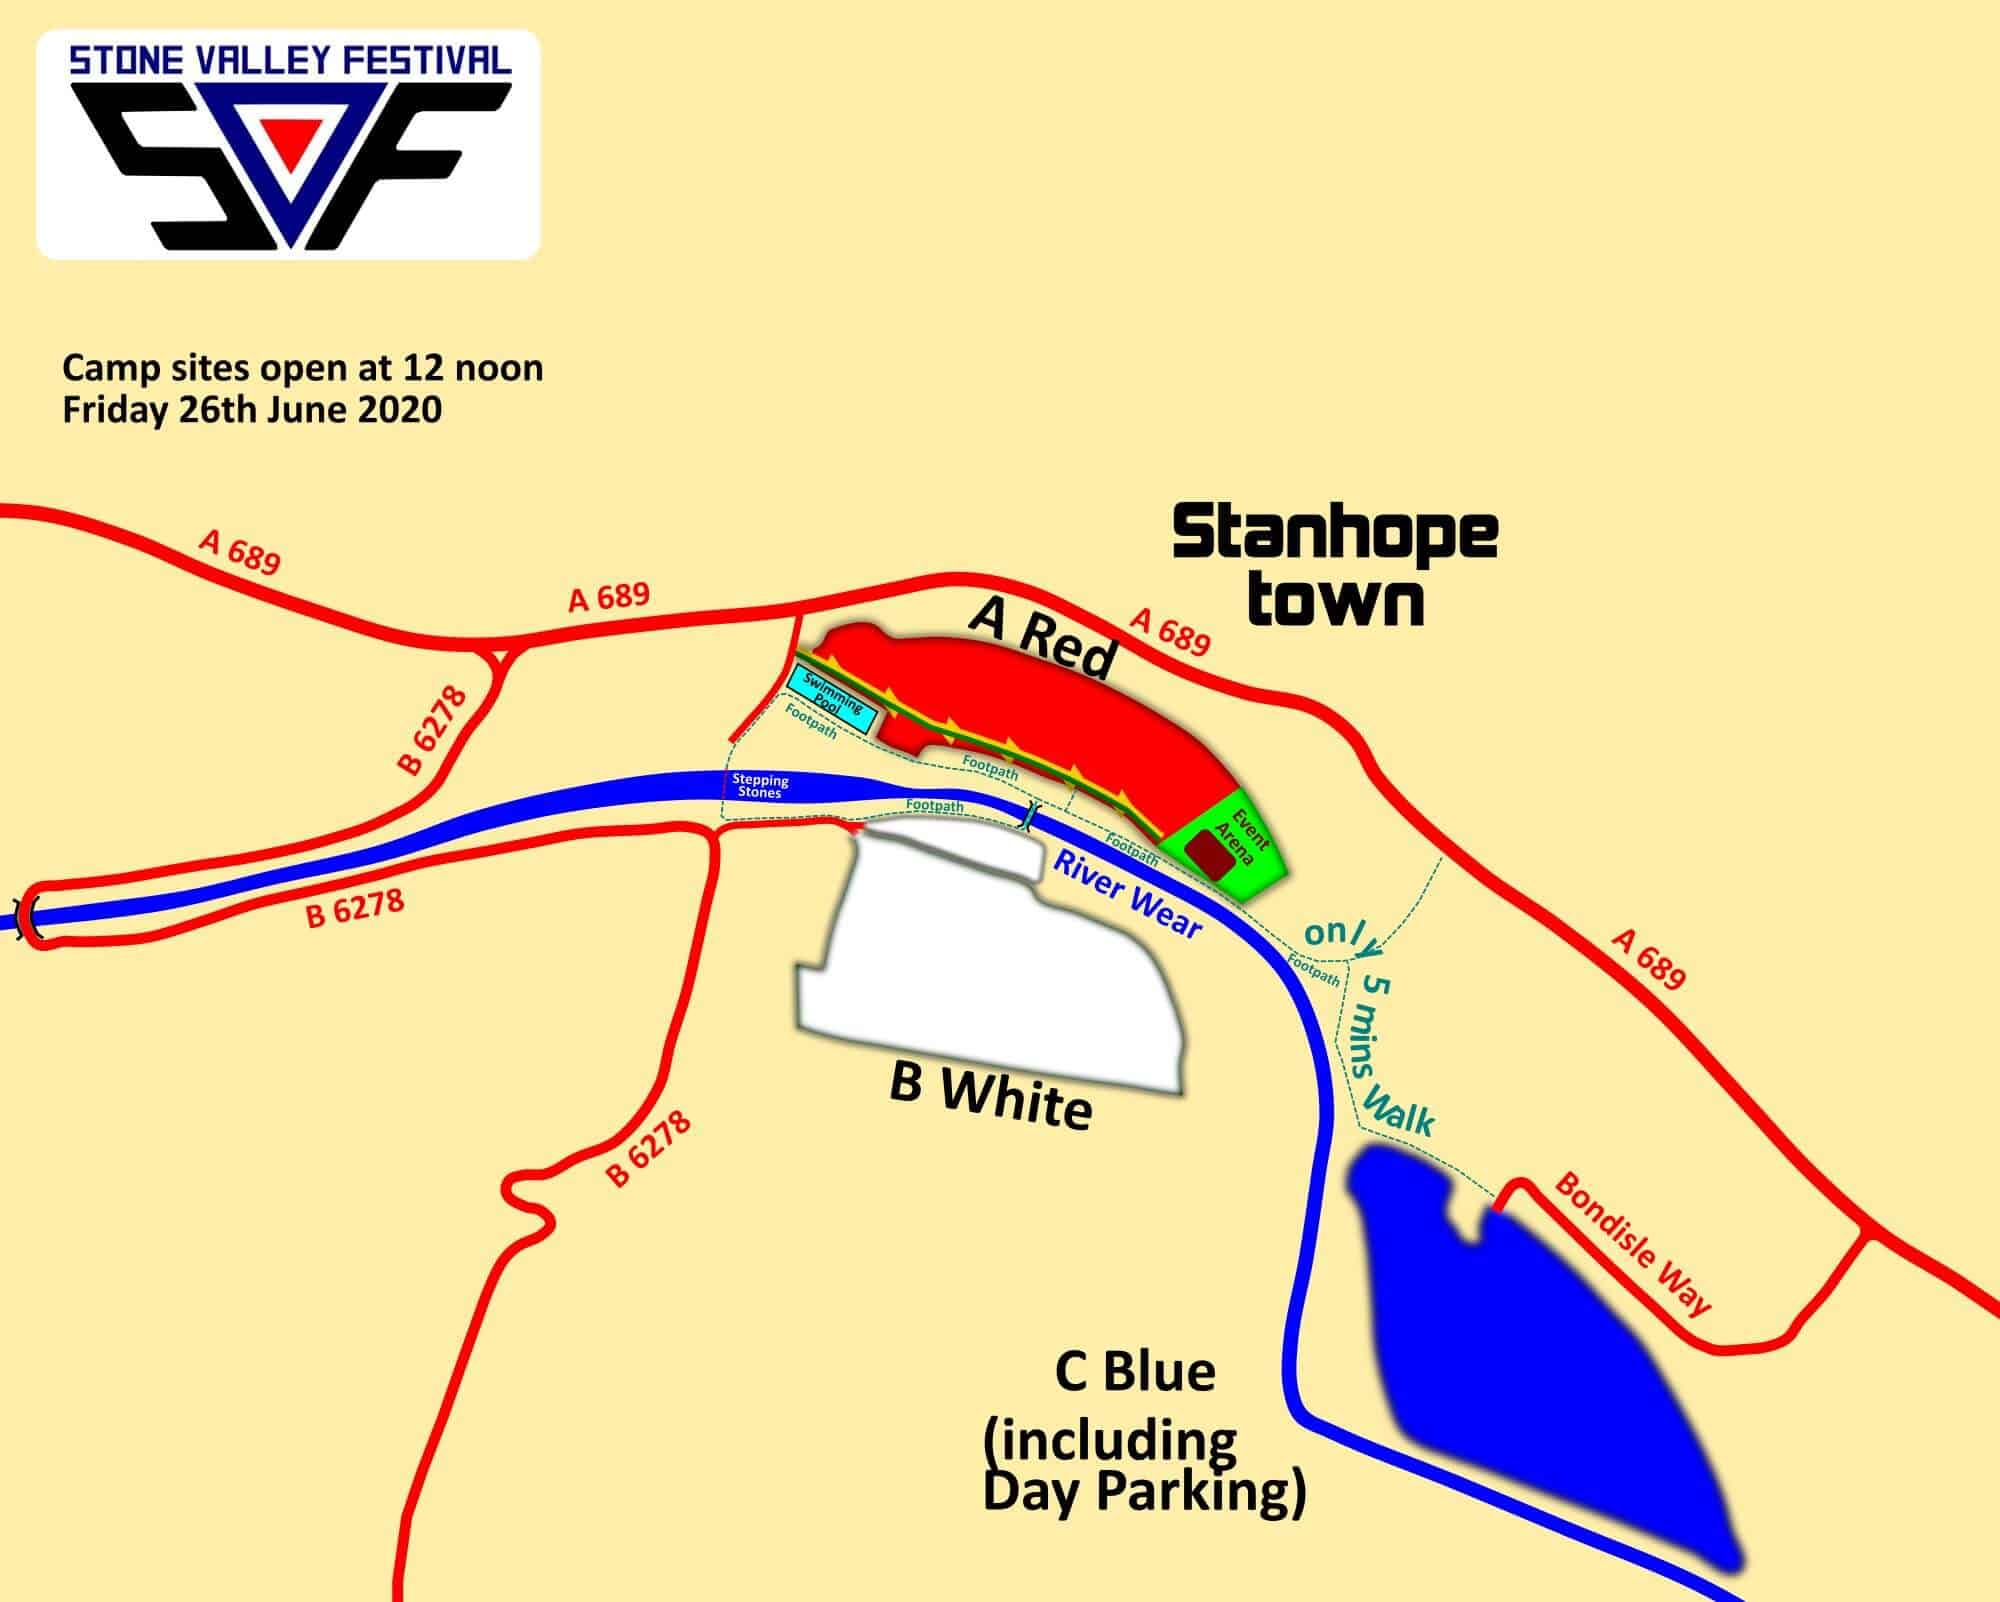 SVF NORTH 2020 SITE MAP